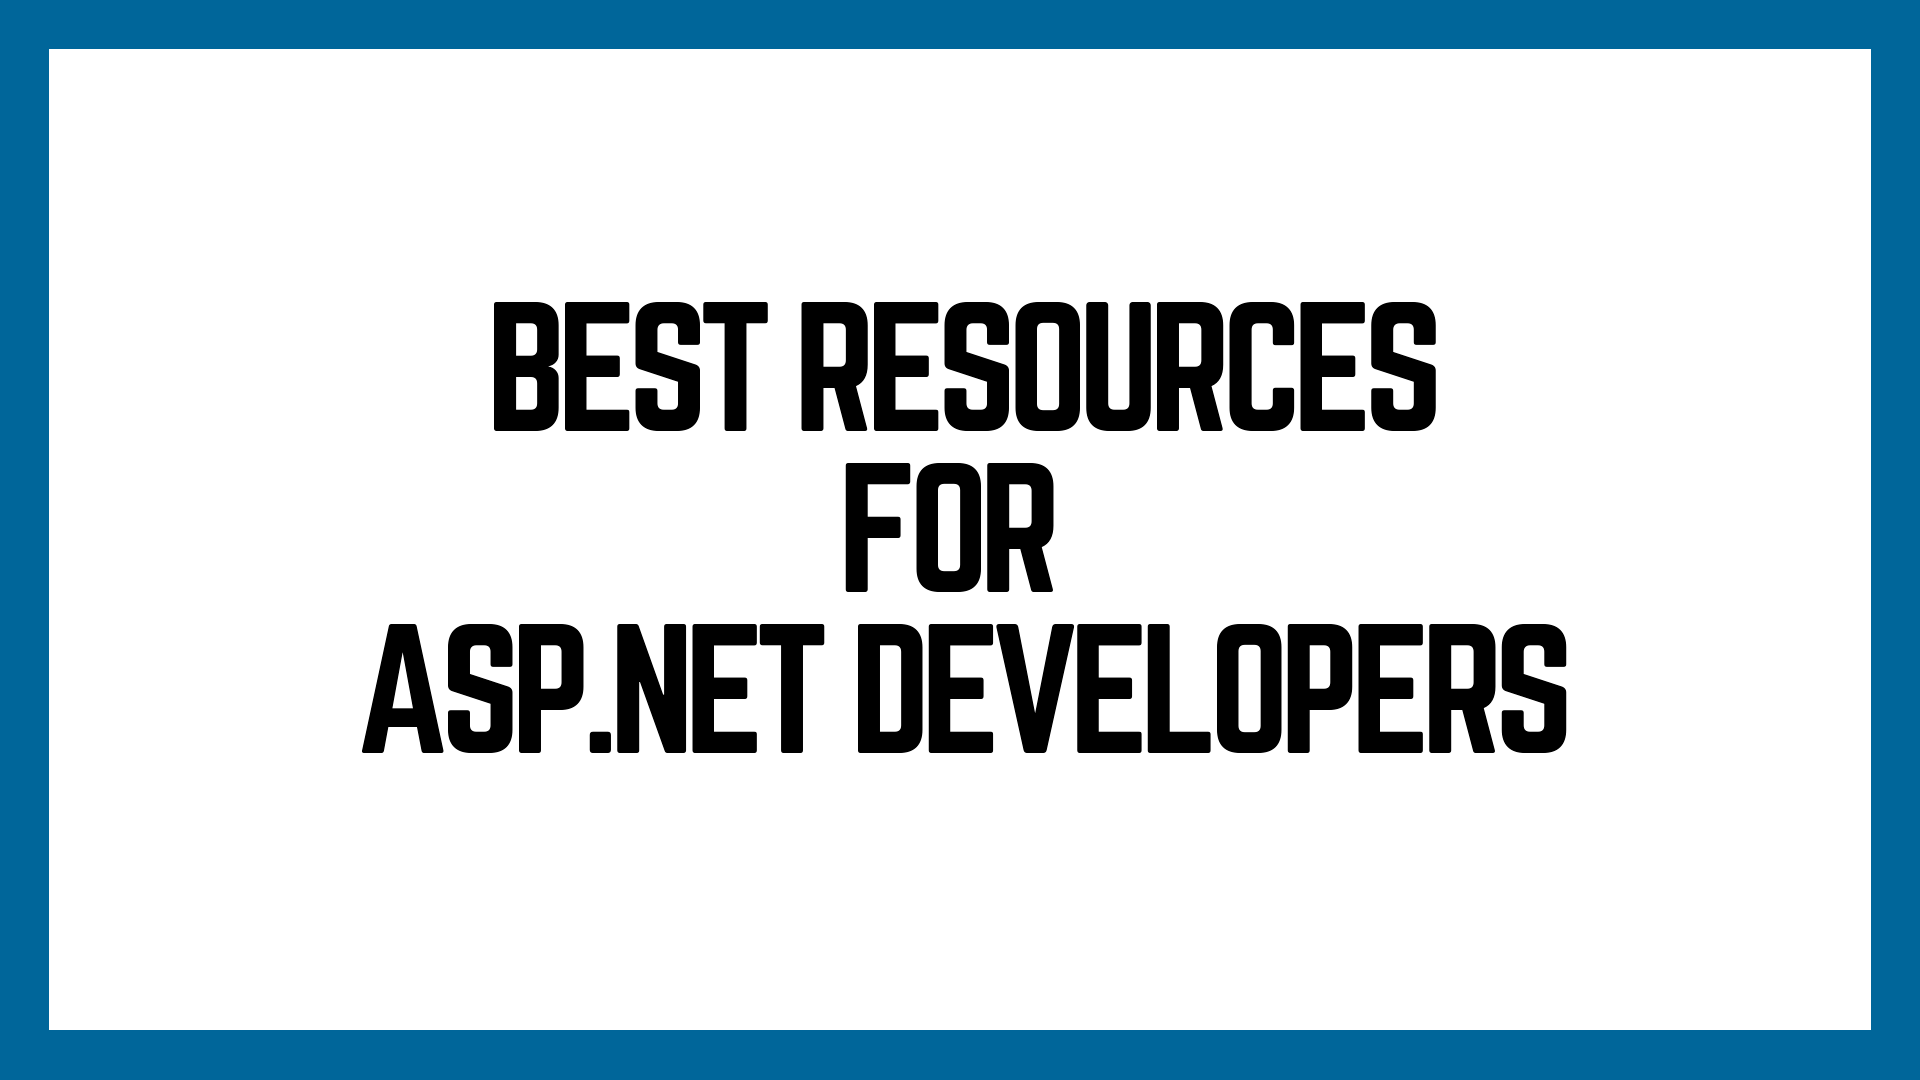 Best Resources for Asp.net Developers